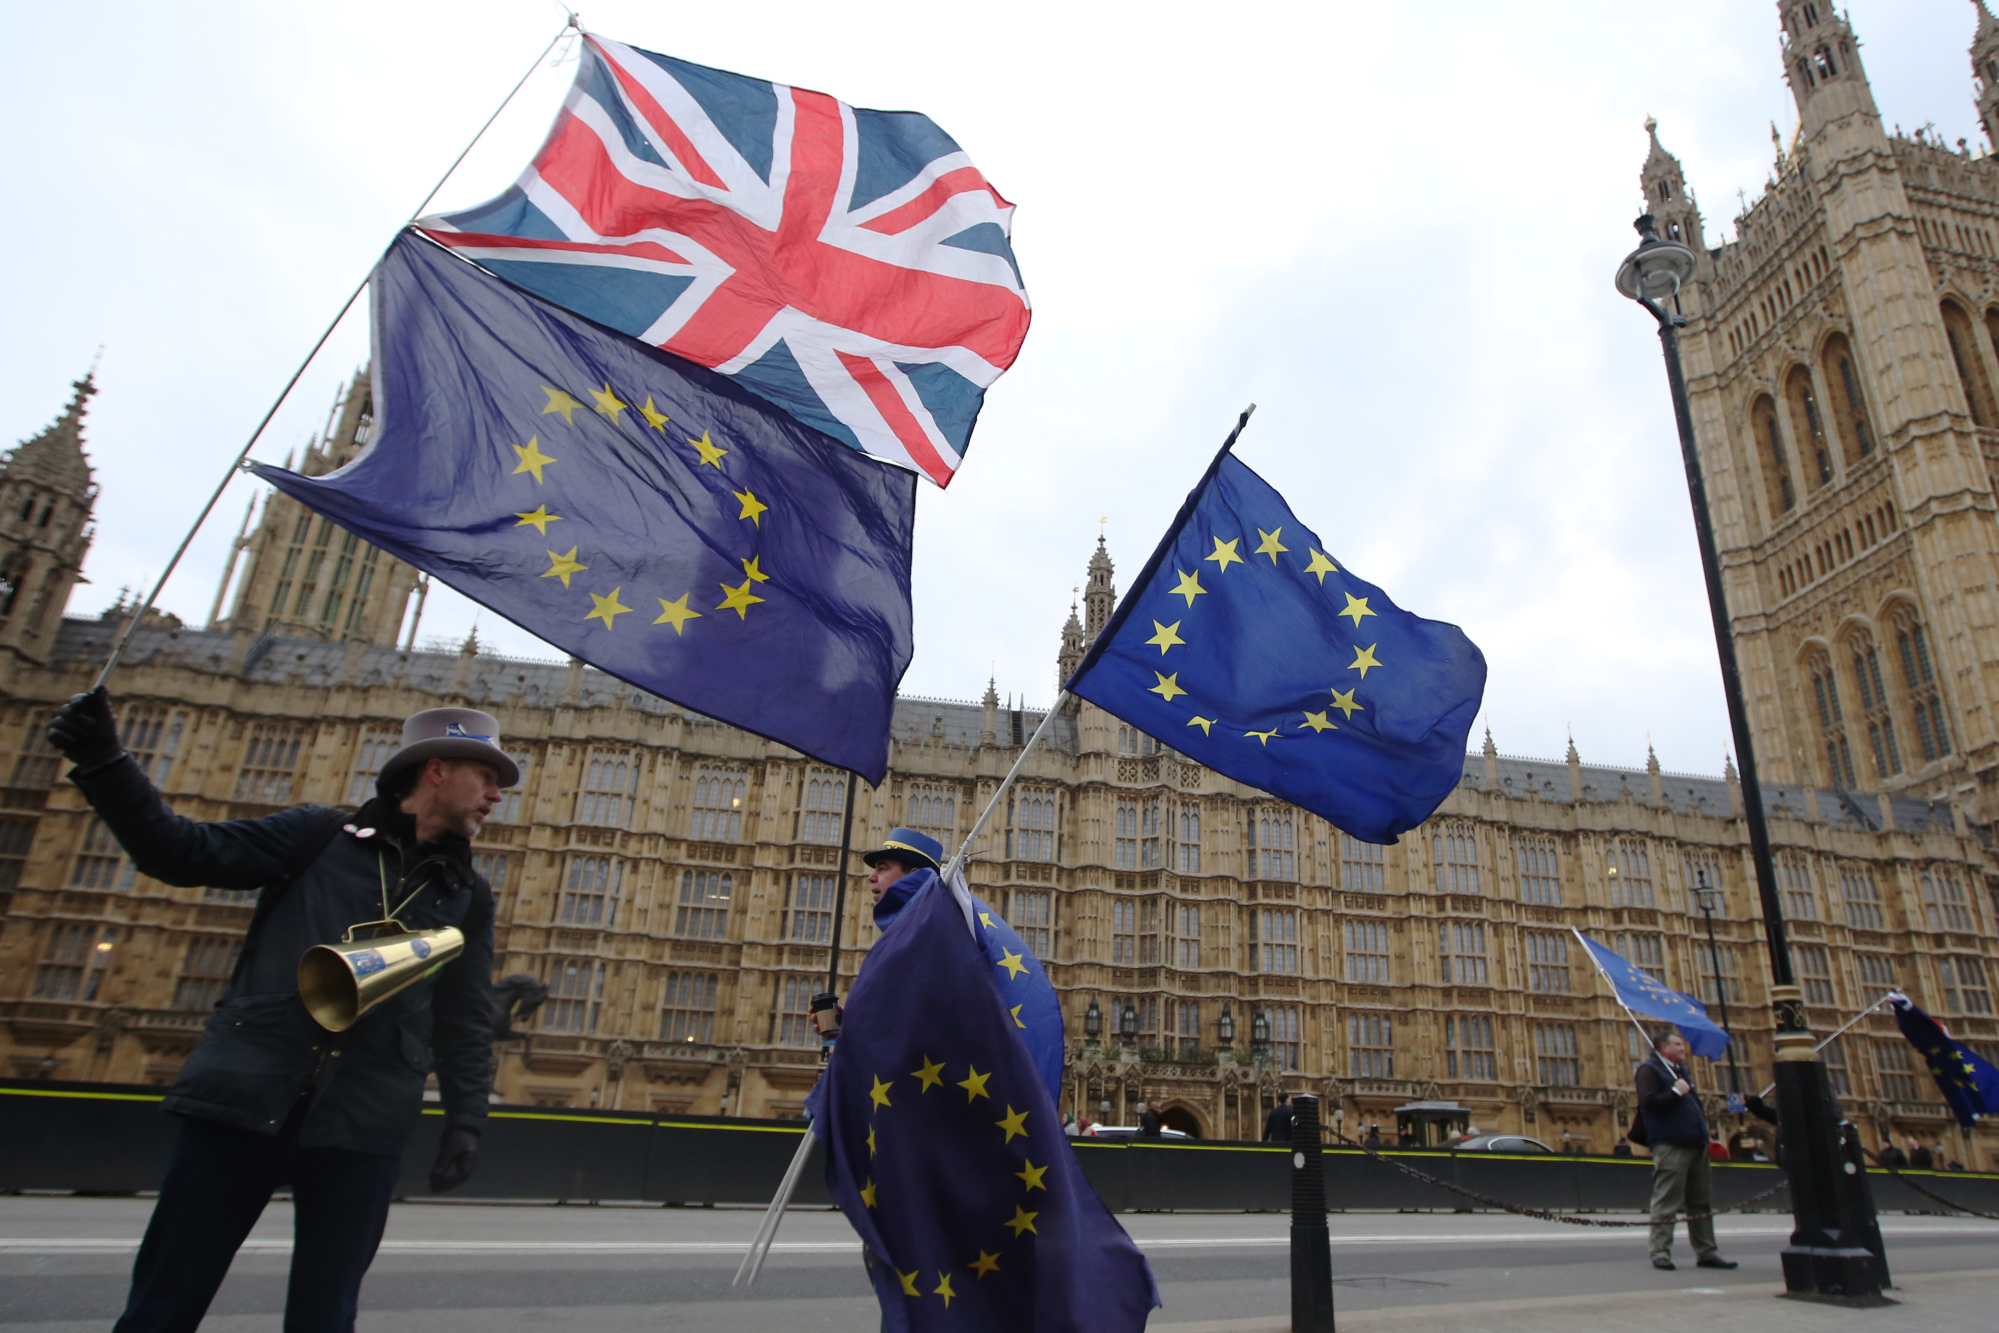 U.K. Judge Blocks Attempt to Force Release of Brexit Papers